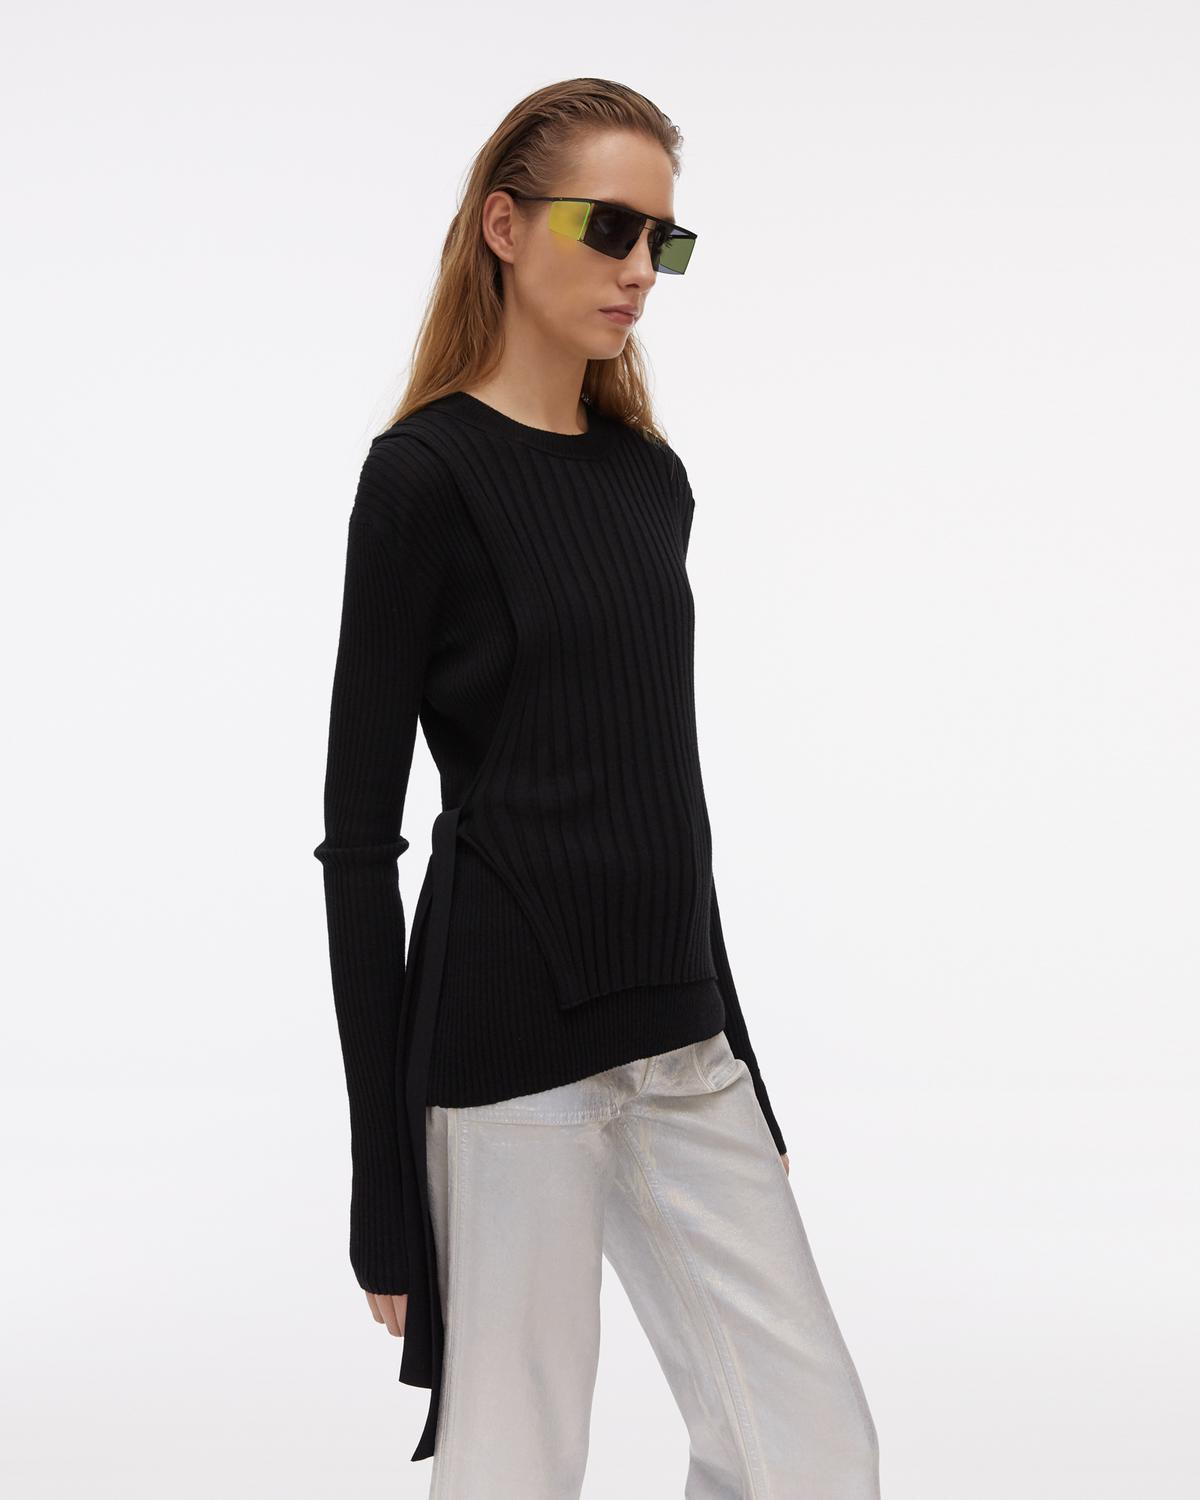 Ribbed Layers Crewneck Sweater